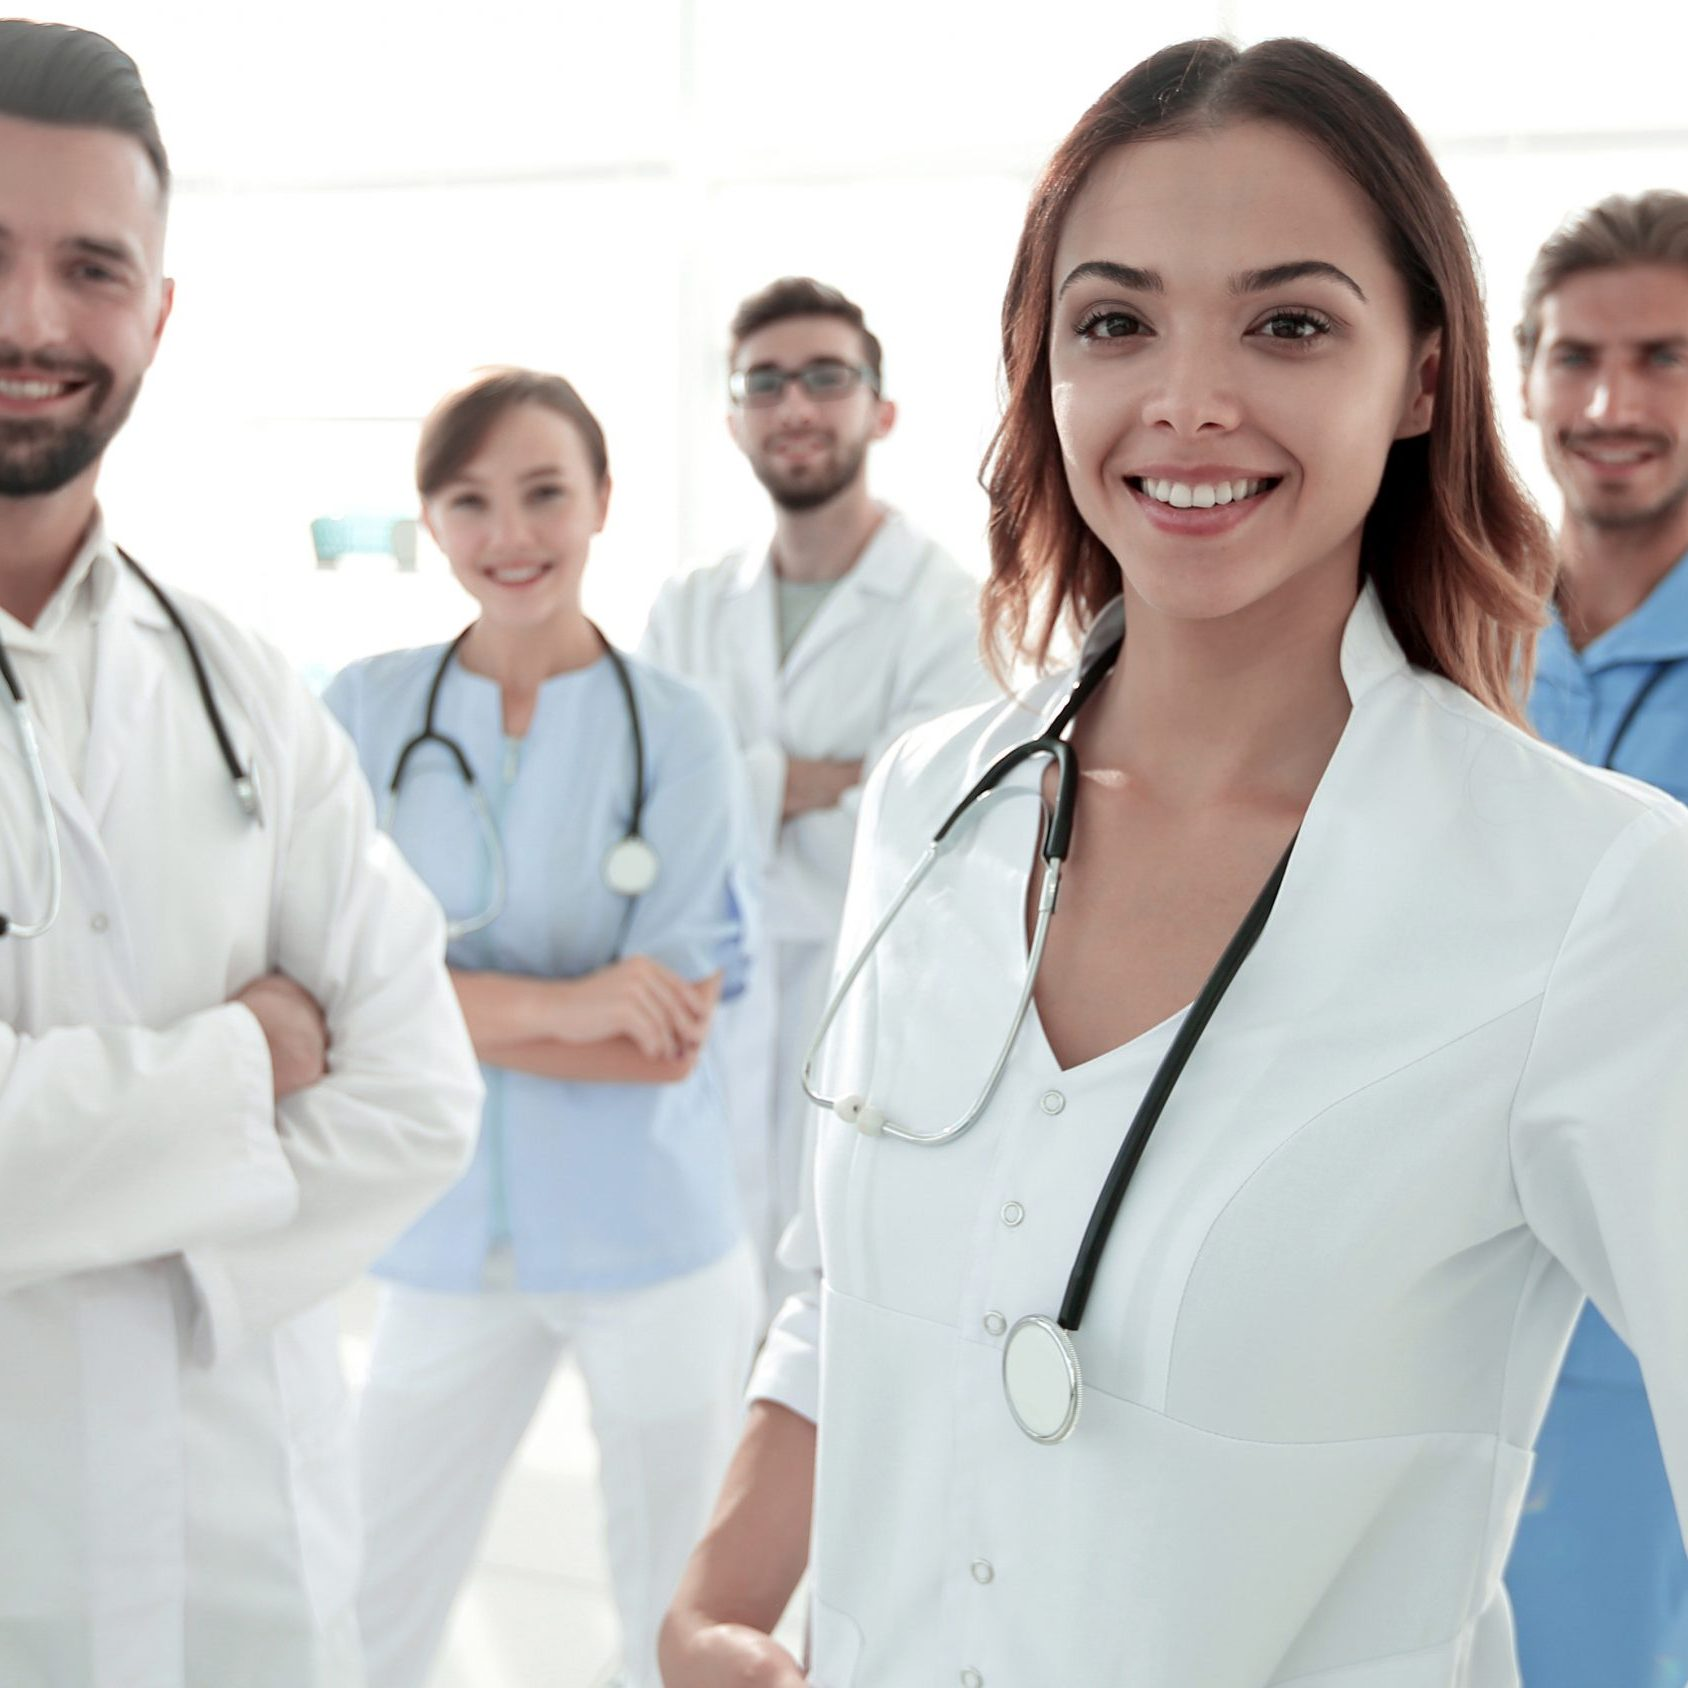 Attractive female doctor with medical stethoscope in front of medical group.photo with copy space